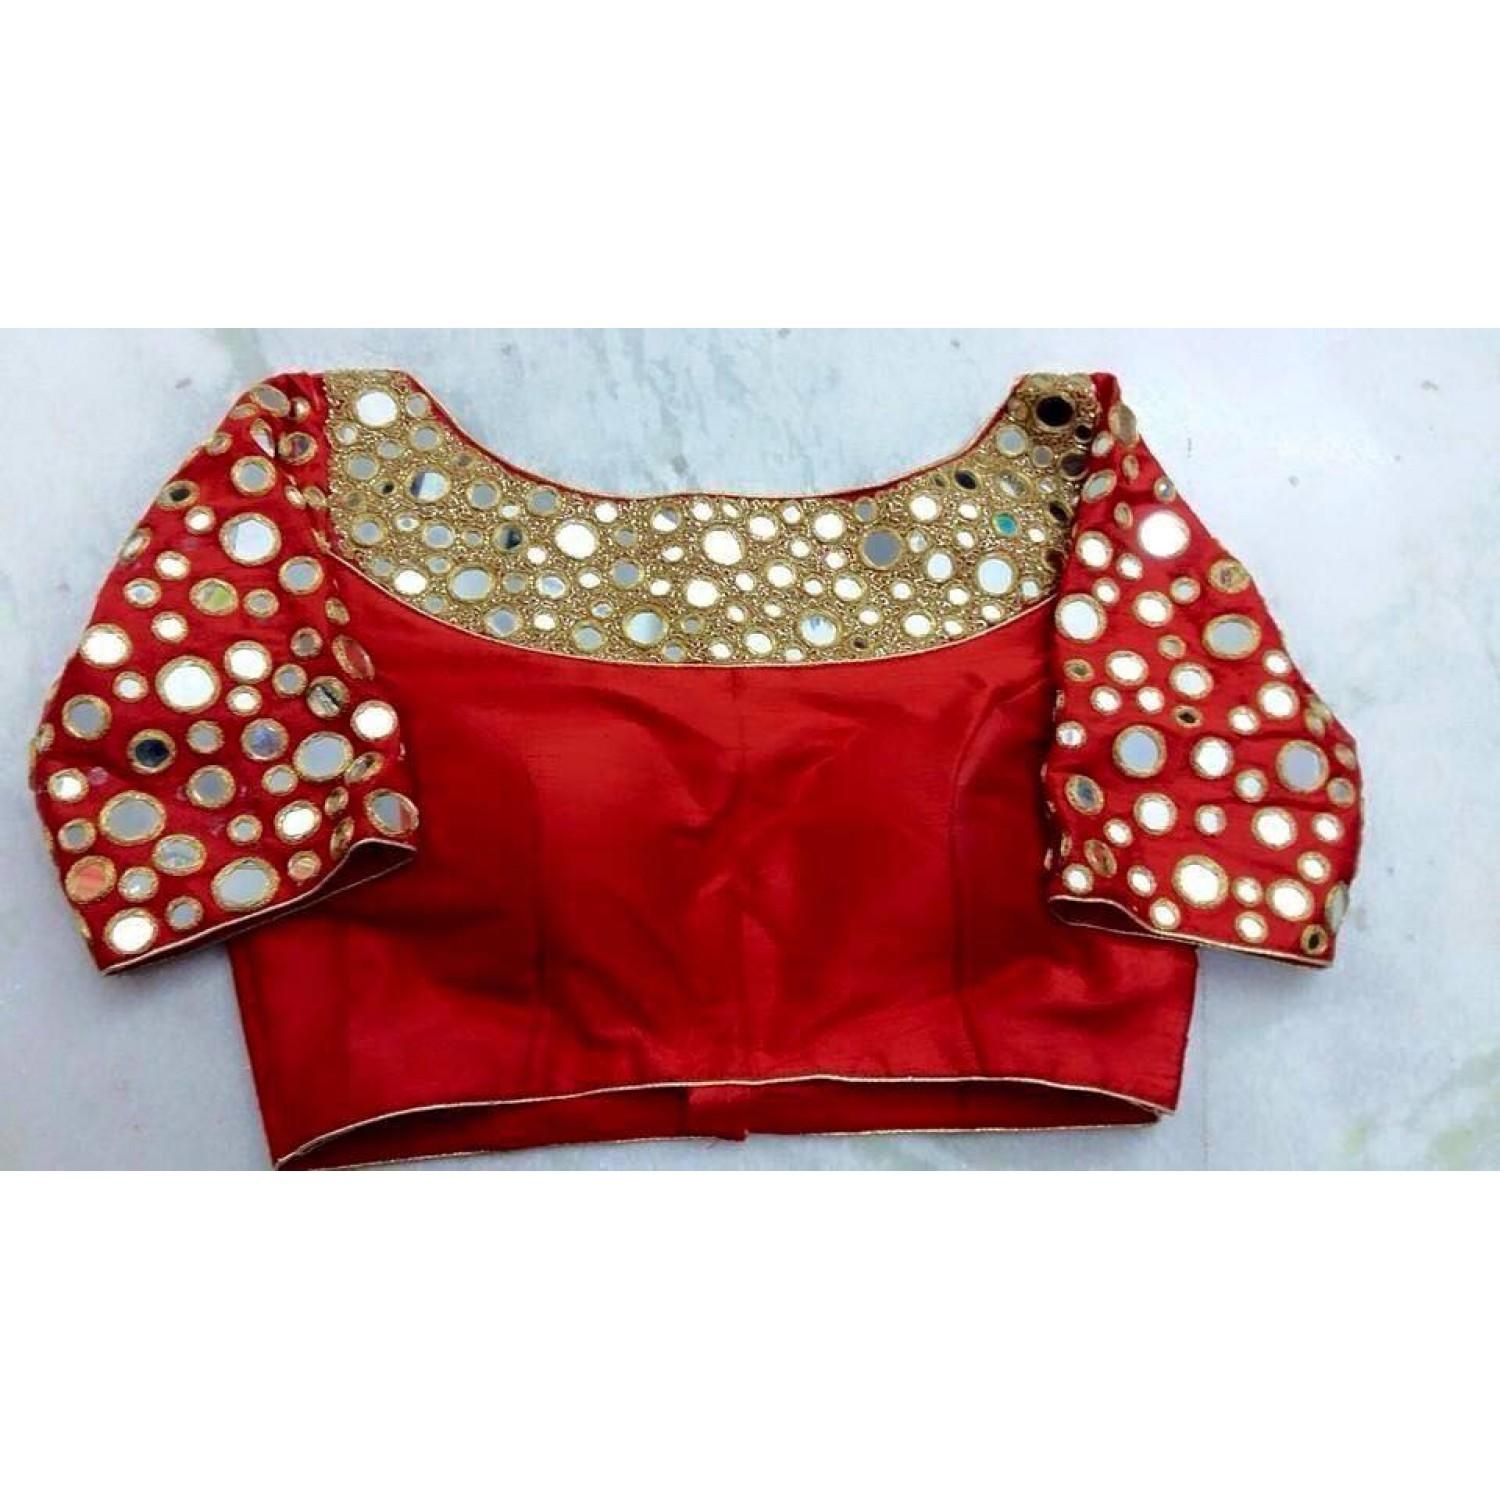 Latest Bridal Readymade Blouses Online Shopping India With Low Inside Online Shopping Mirror (View 8 of 20)